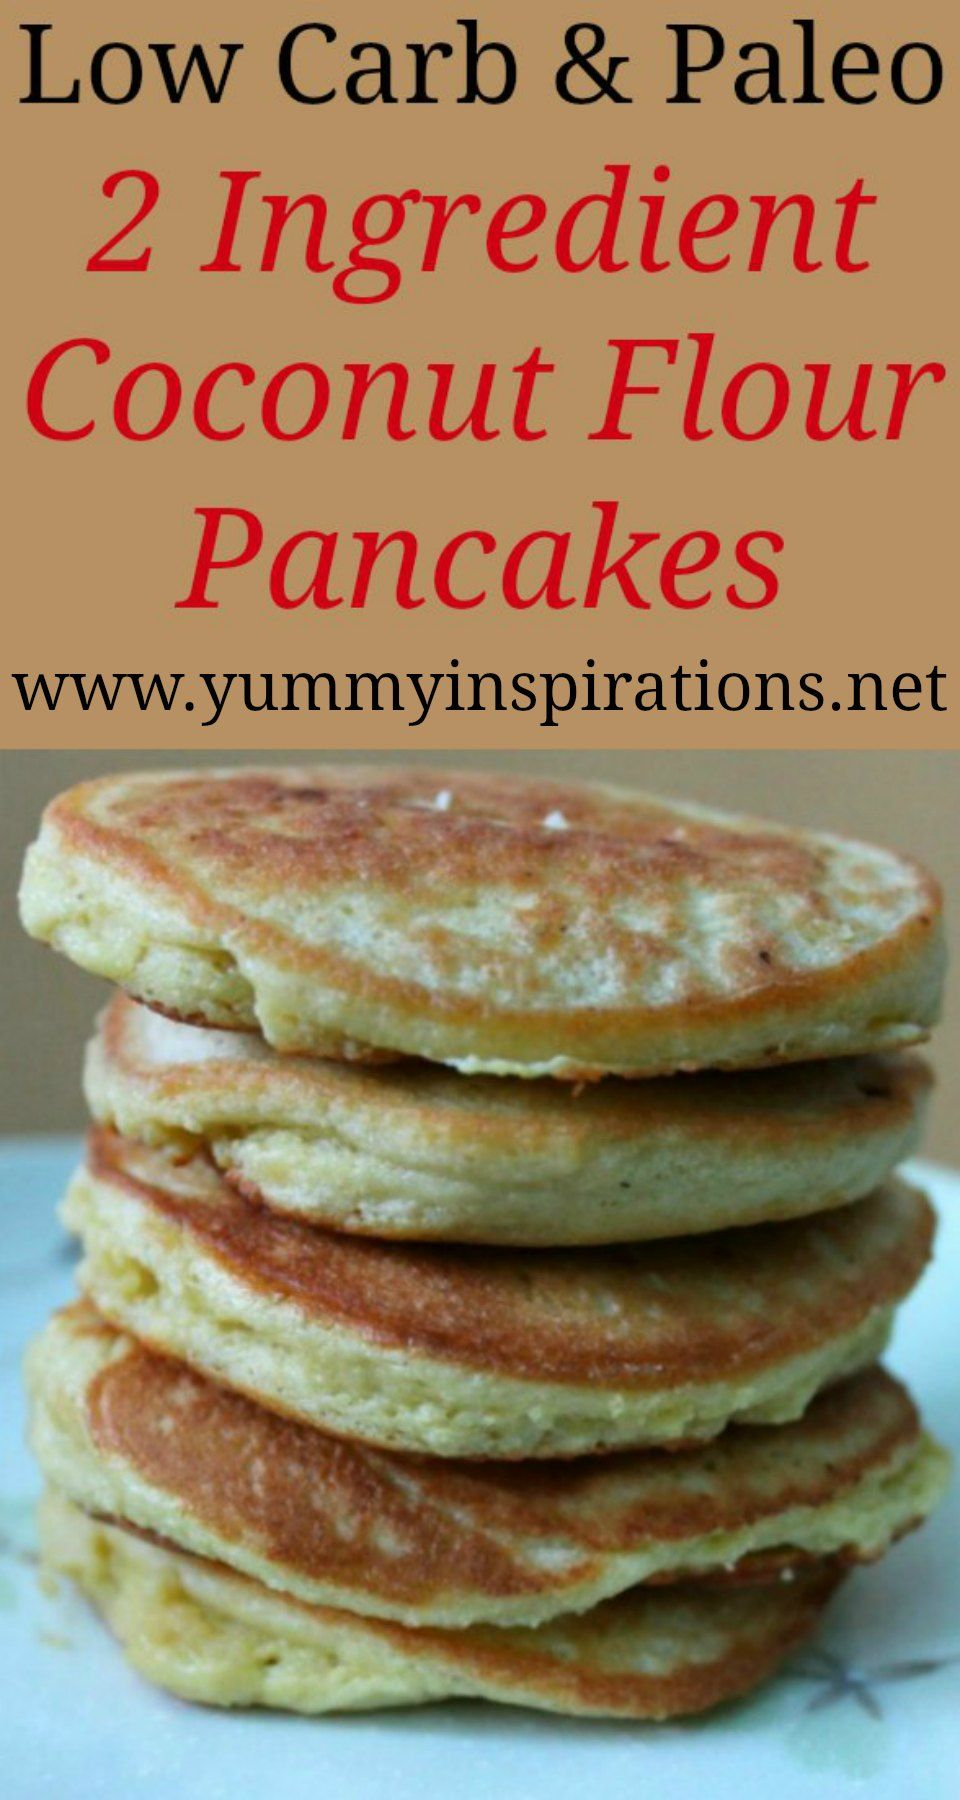 2 Ingredient Coconut Flour Pancakes Dairy Free Paleo Low Carb Keto Recipe Low Carb Coconut Flour Pancakes Coconut Flour Pancakes No Flour Pancakes